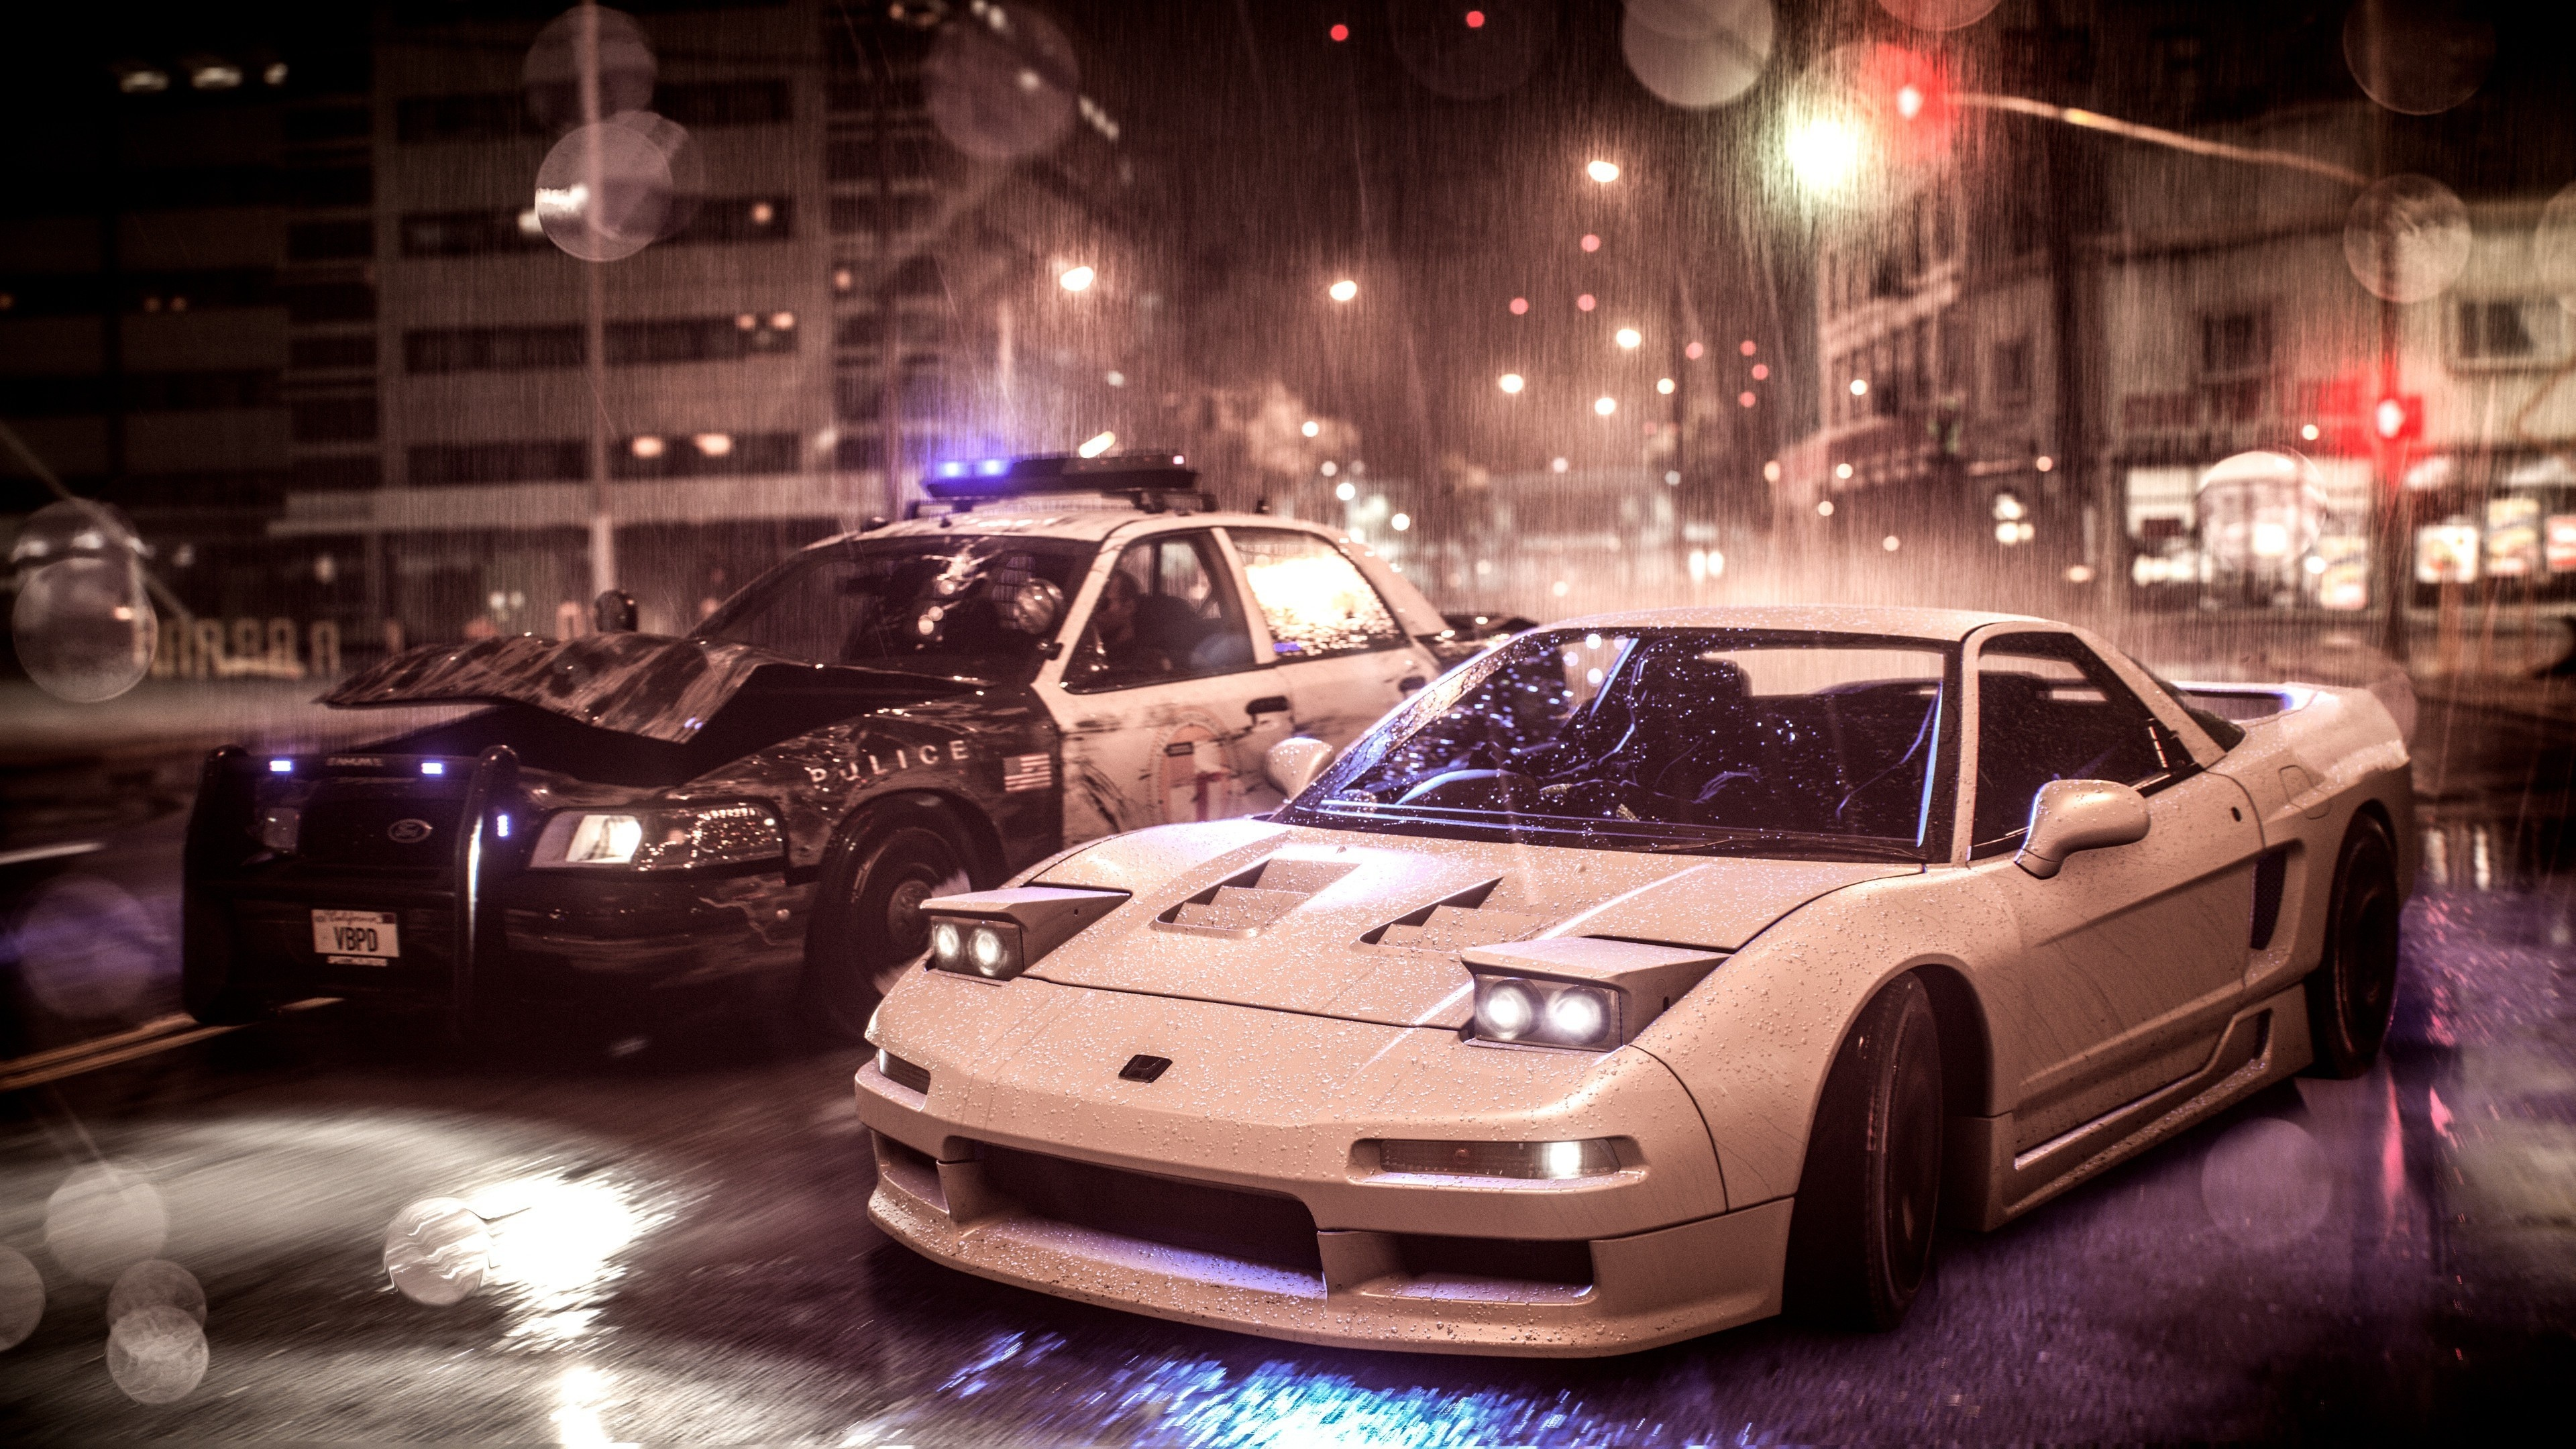 Download 3840x2400 Wallpaper Need For Speed Acura Nsx Vs Police